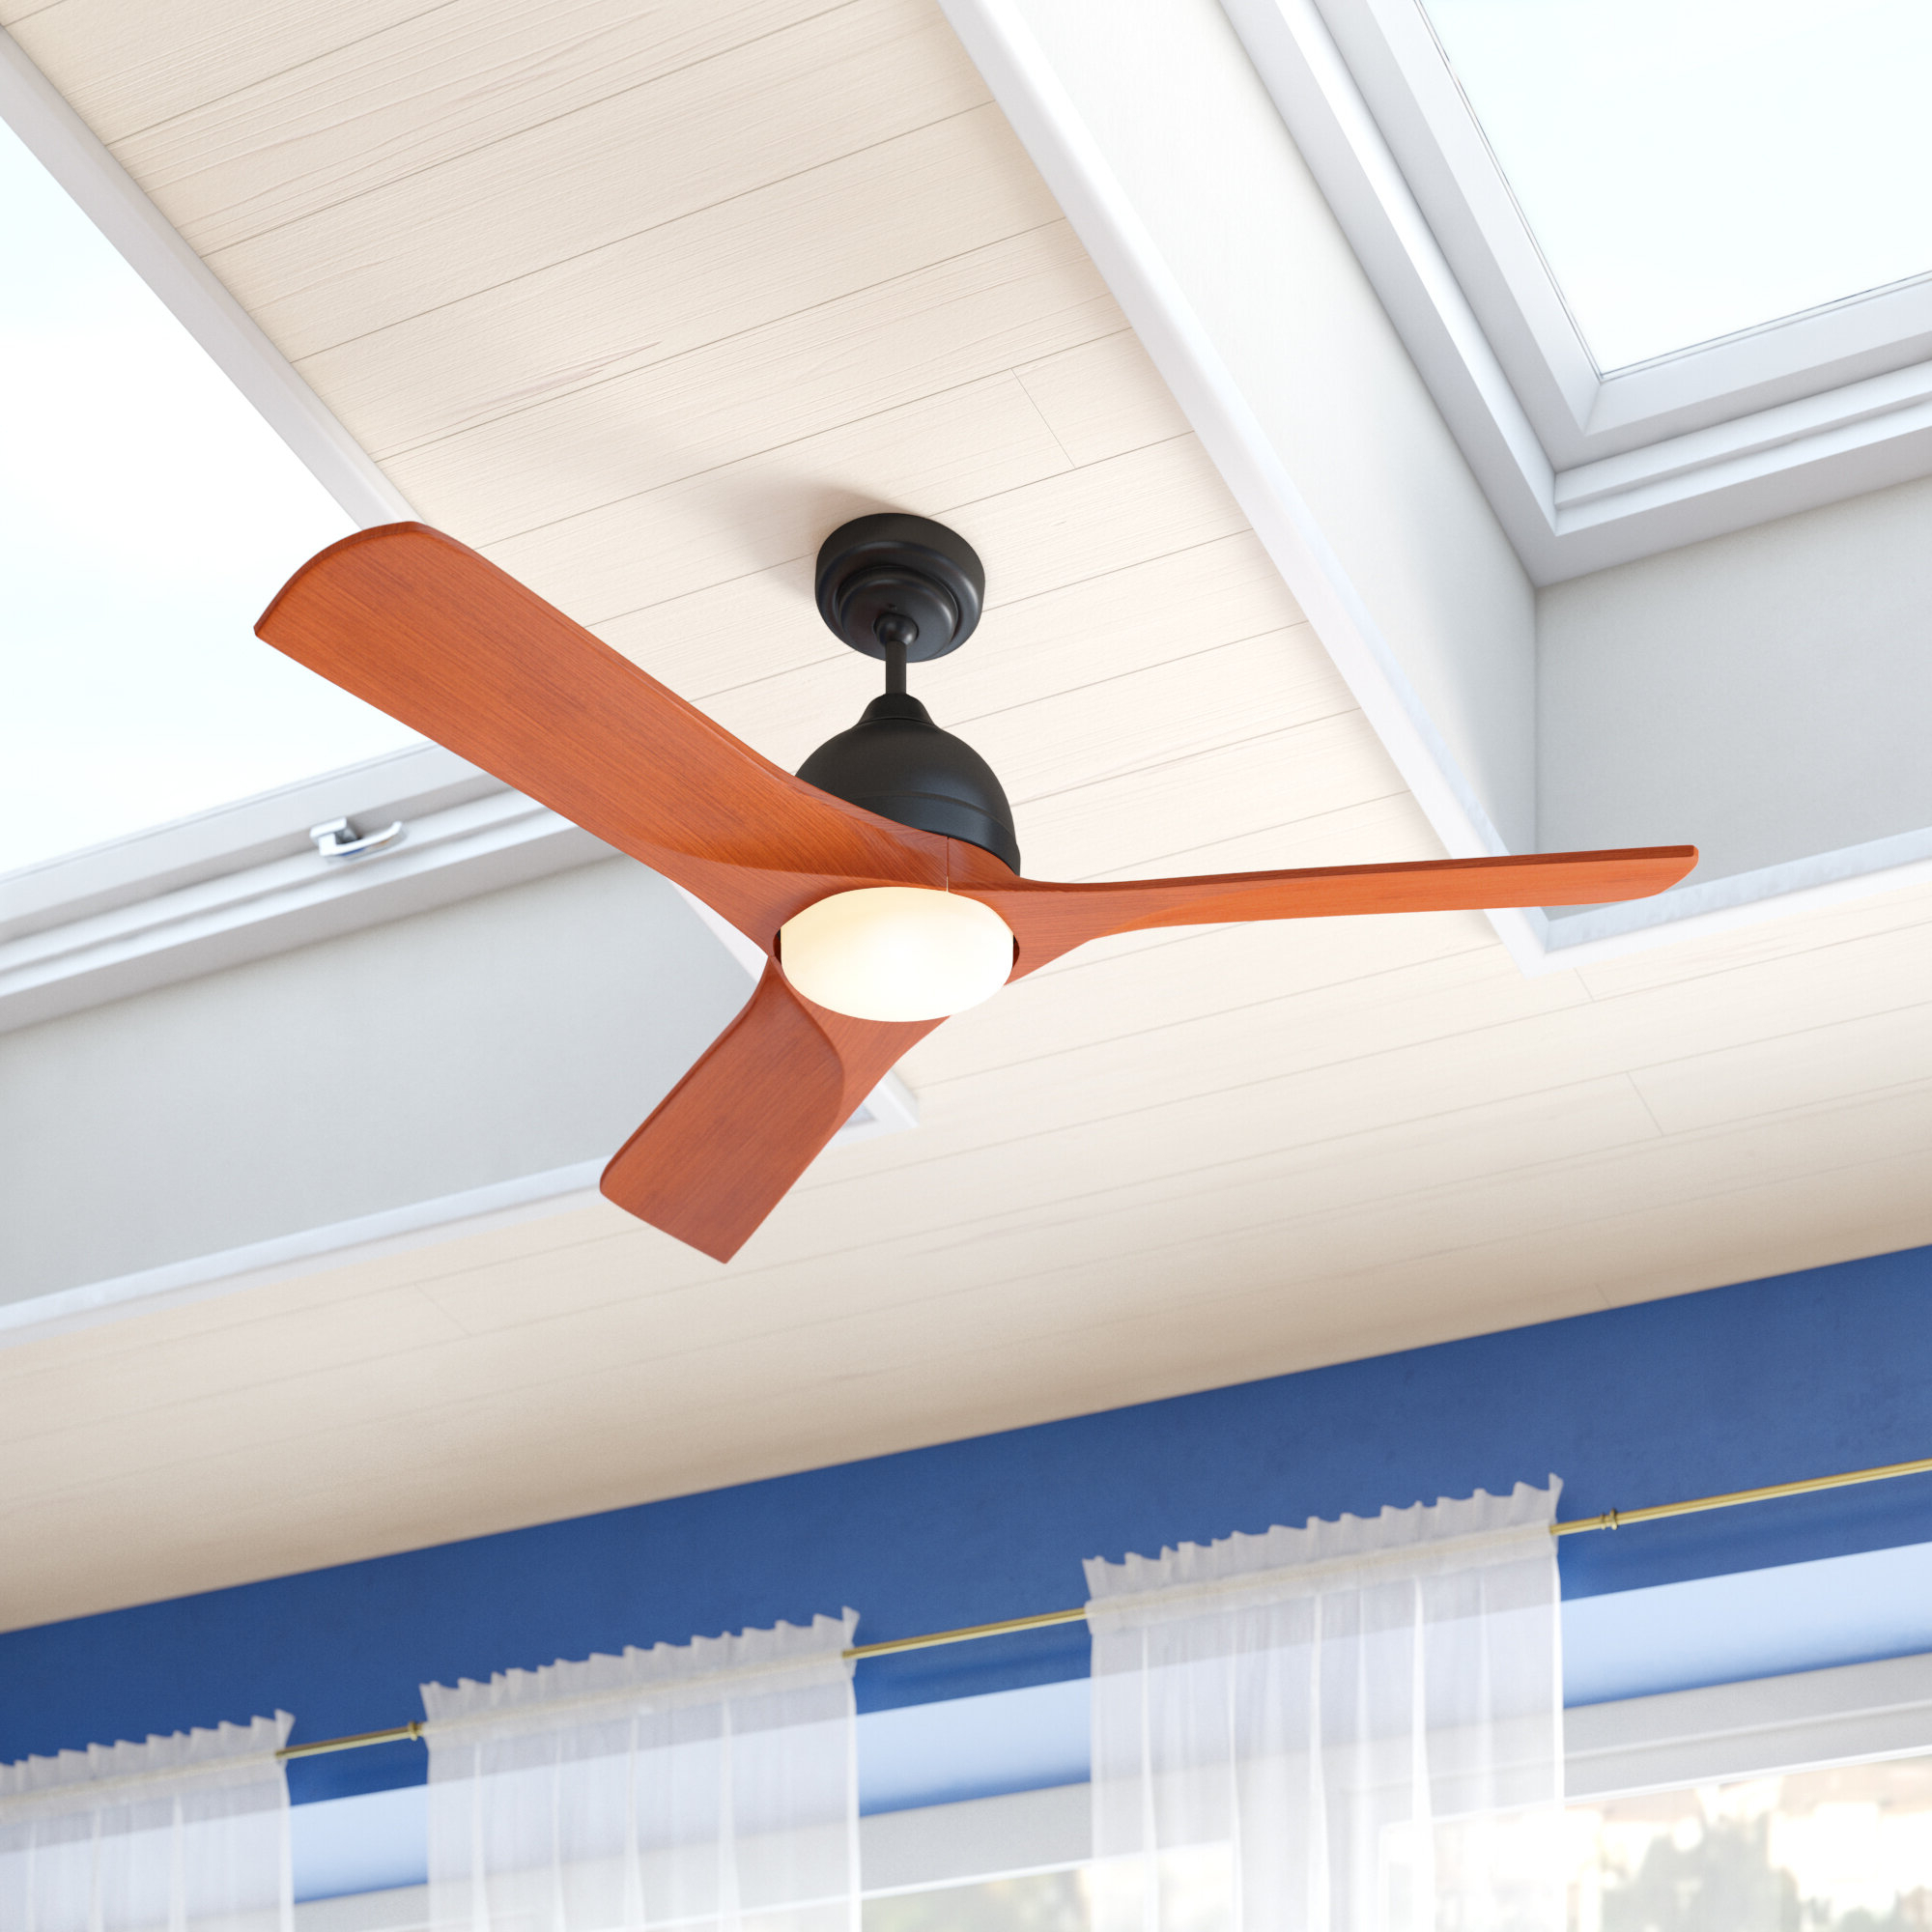 """Current Paige 3 Blade Led Ceiling Fans Inside 54"""" Zilla 3 Blade Outdoor Led Ceiling Fan With Remote, Light Kit Included (View 4 of 20)"""